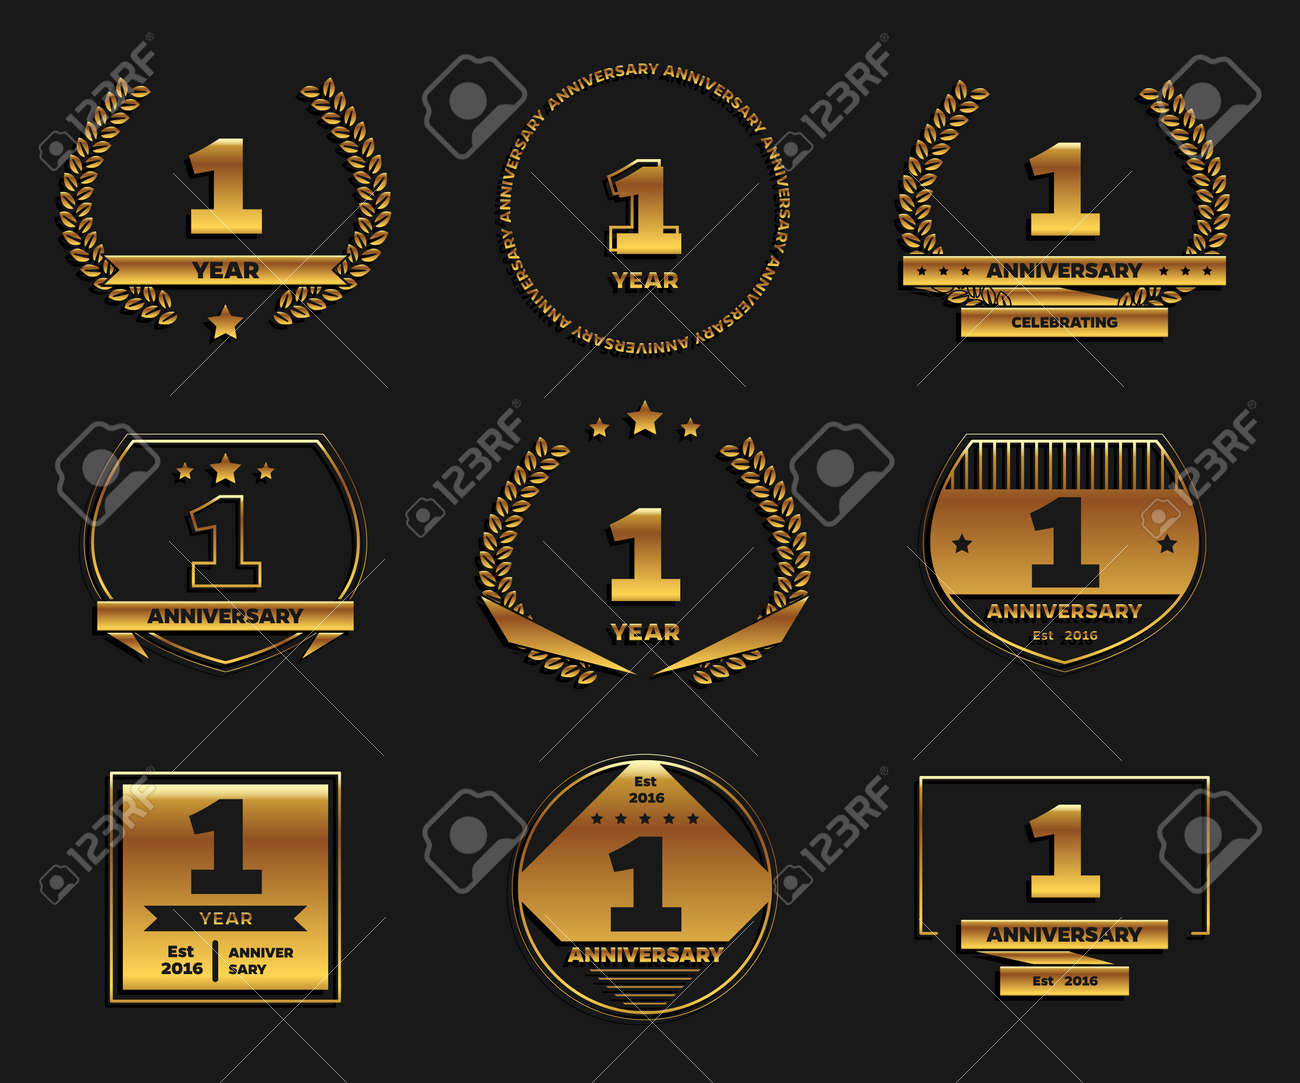 one year anniversary celebration logotype 1st anniversary logo royalty free cliparts vectors and stock illustration image 97699758 one year anniversary celebration logotype 1st anniversary logo